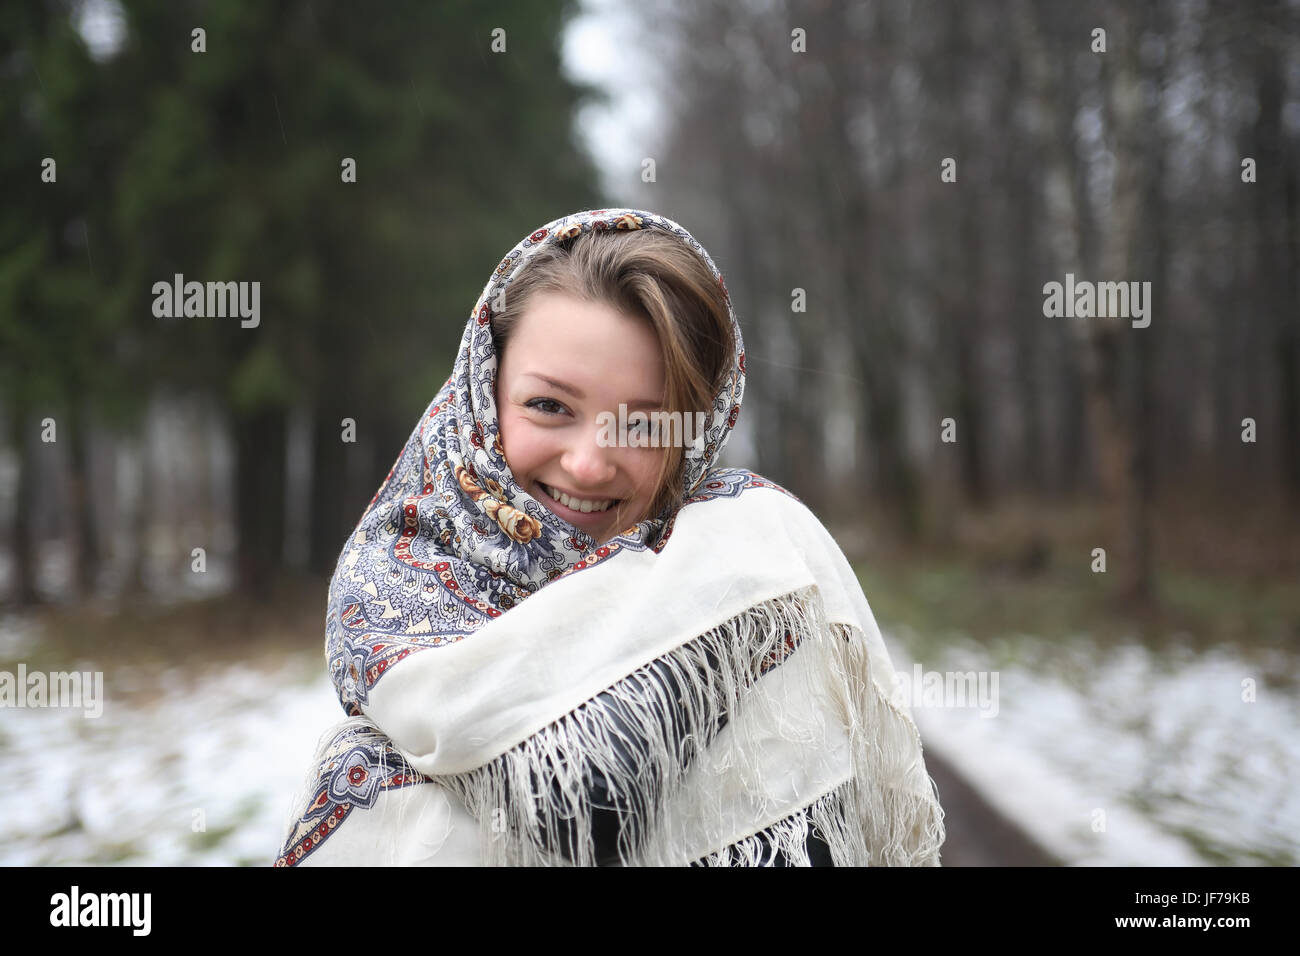 b575261493d9b Beautiful young russian girl wearing traditional headscarf on forest  background - Stock Image